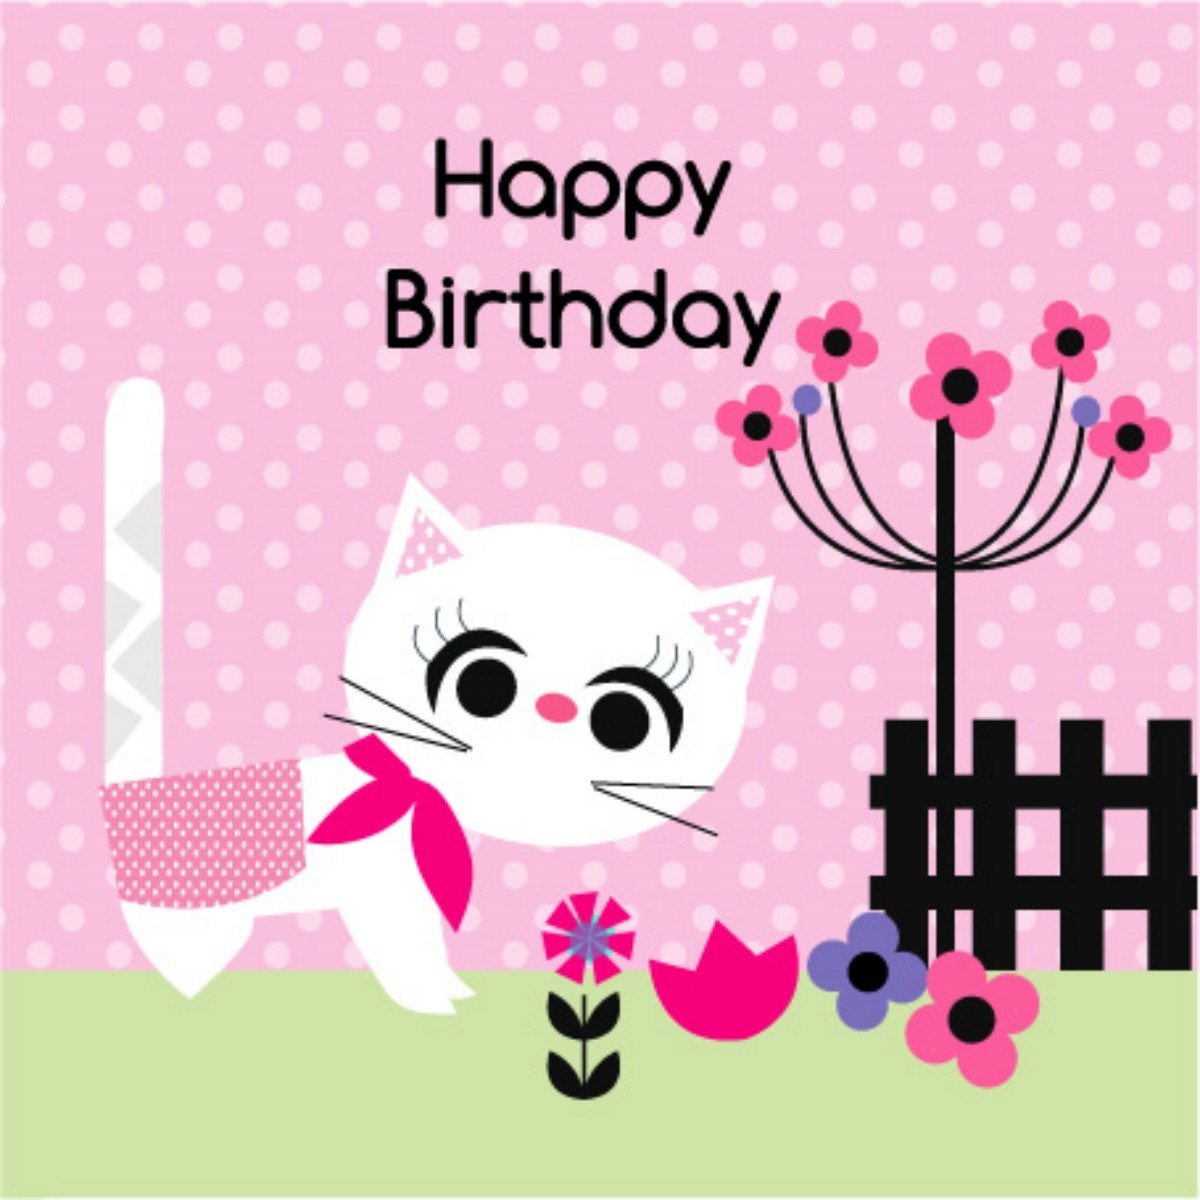 Greeting card greeting card uk birthday greeting cards bookmarktalkfo Gallery